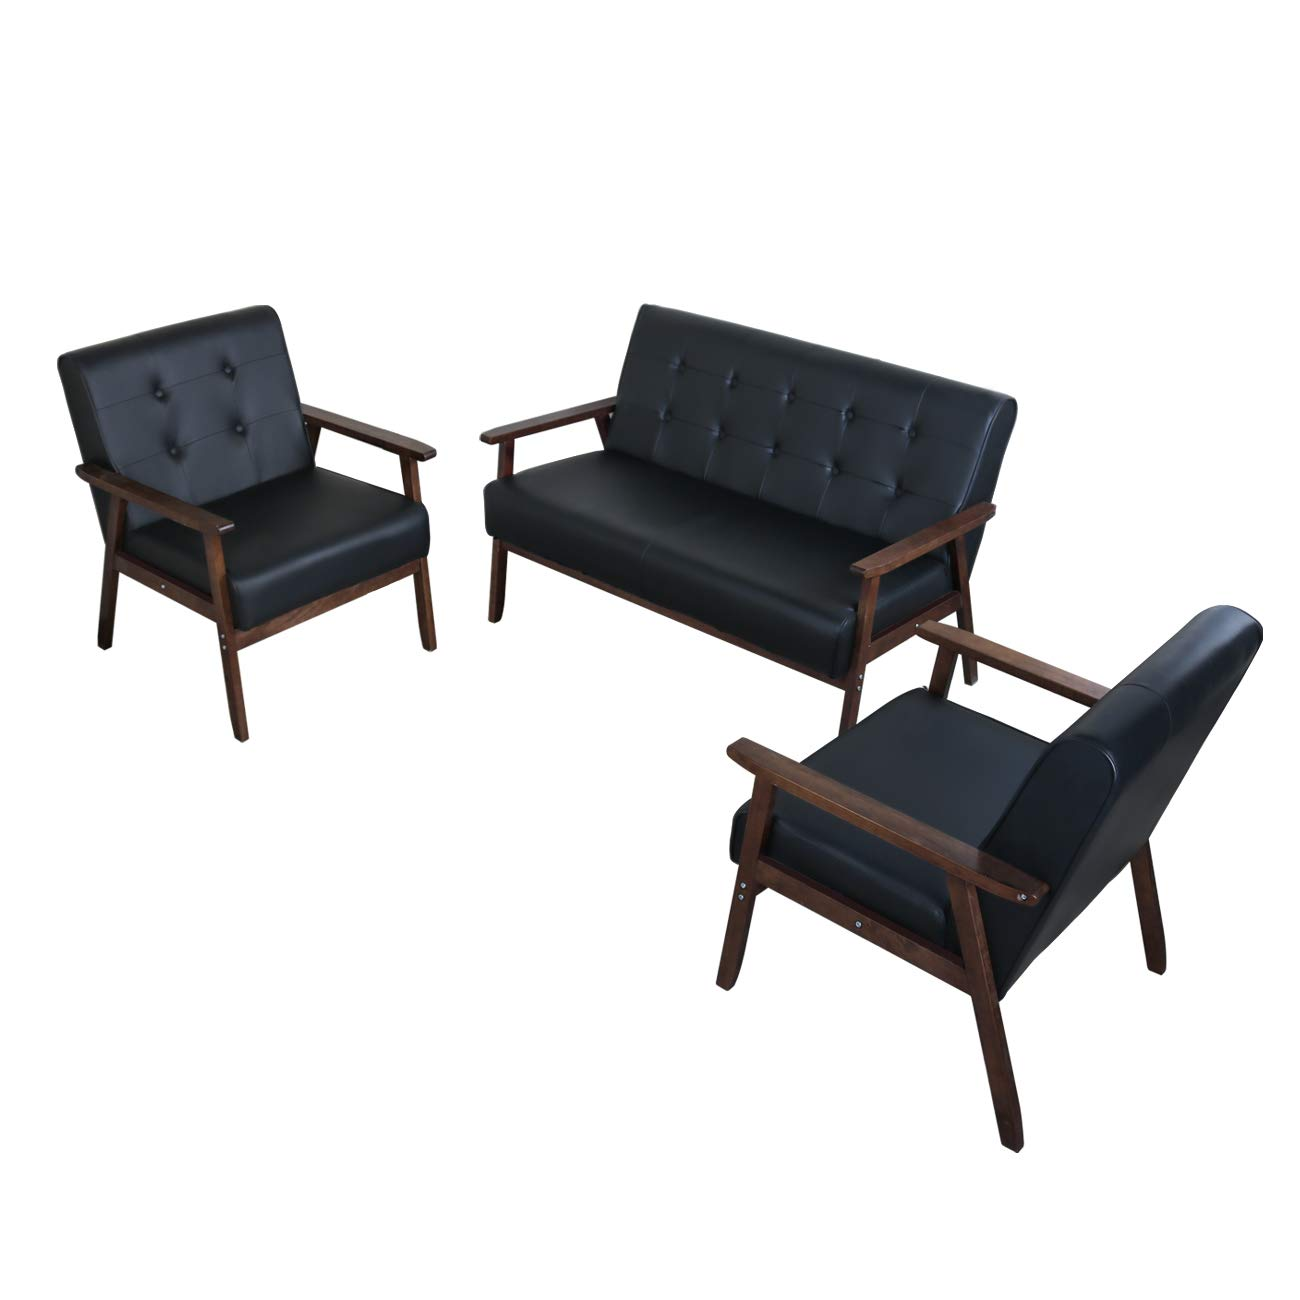 JIASTING Mid Century 1 Loveseat Sofa and 2 Accent Chairs Set Modern Wood Arm Couch and Chair Living Room Furniture Sets (8428 Black Set) by JIASTING